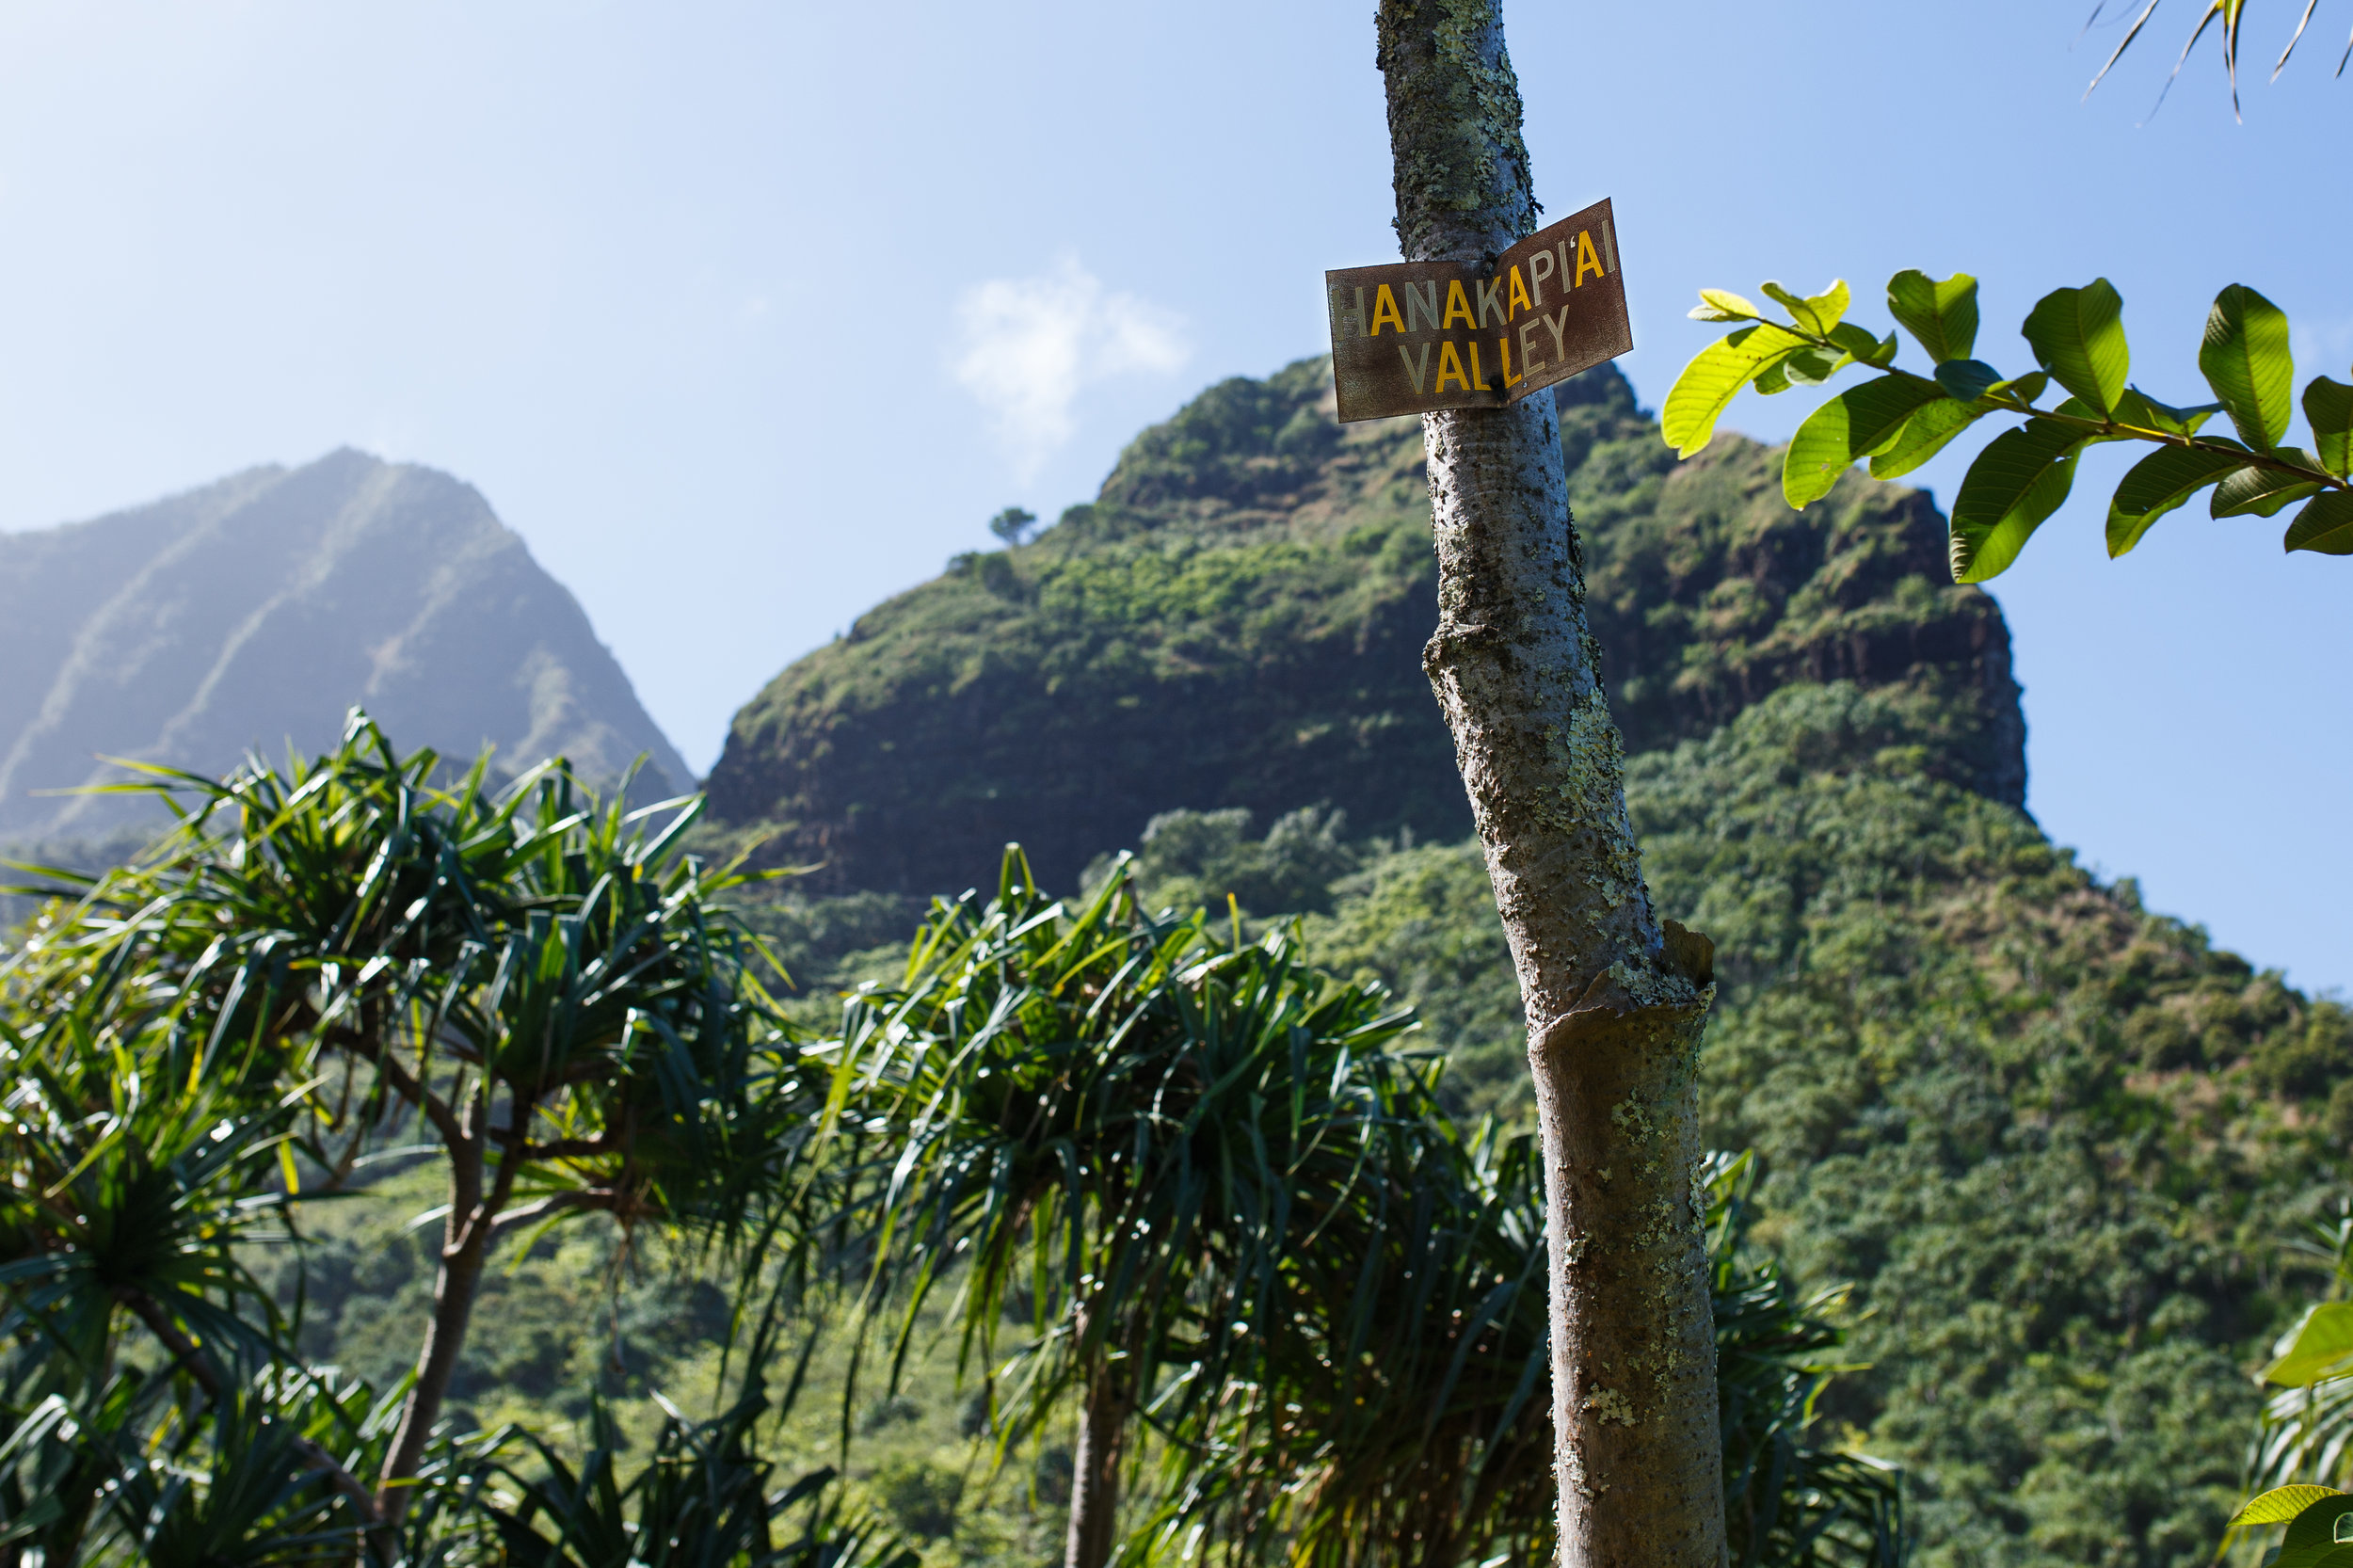 2 miles into the Kalalau Trail, you'll be welcomed by this sign to the entrance of Hanakapi'ai Valley.